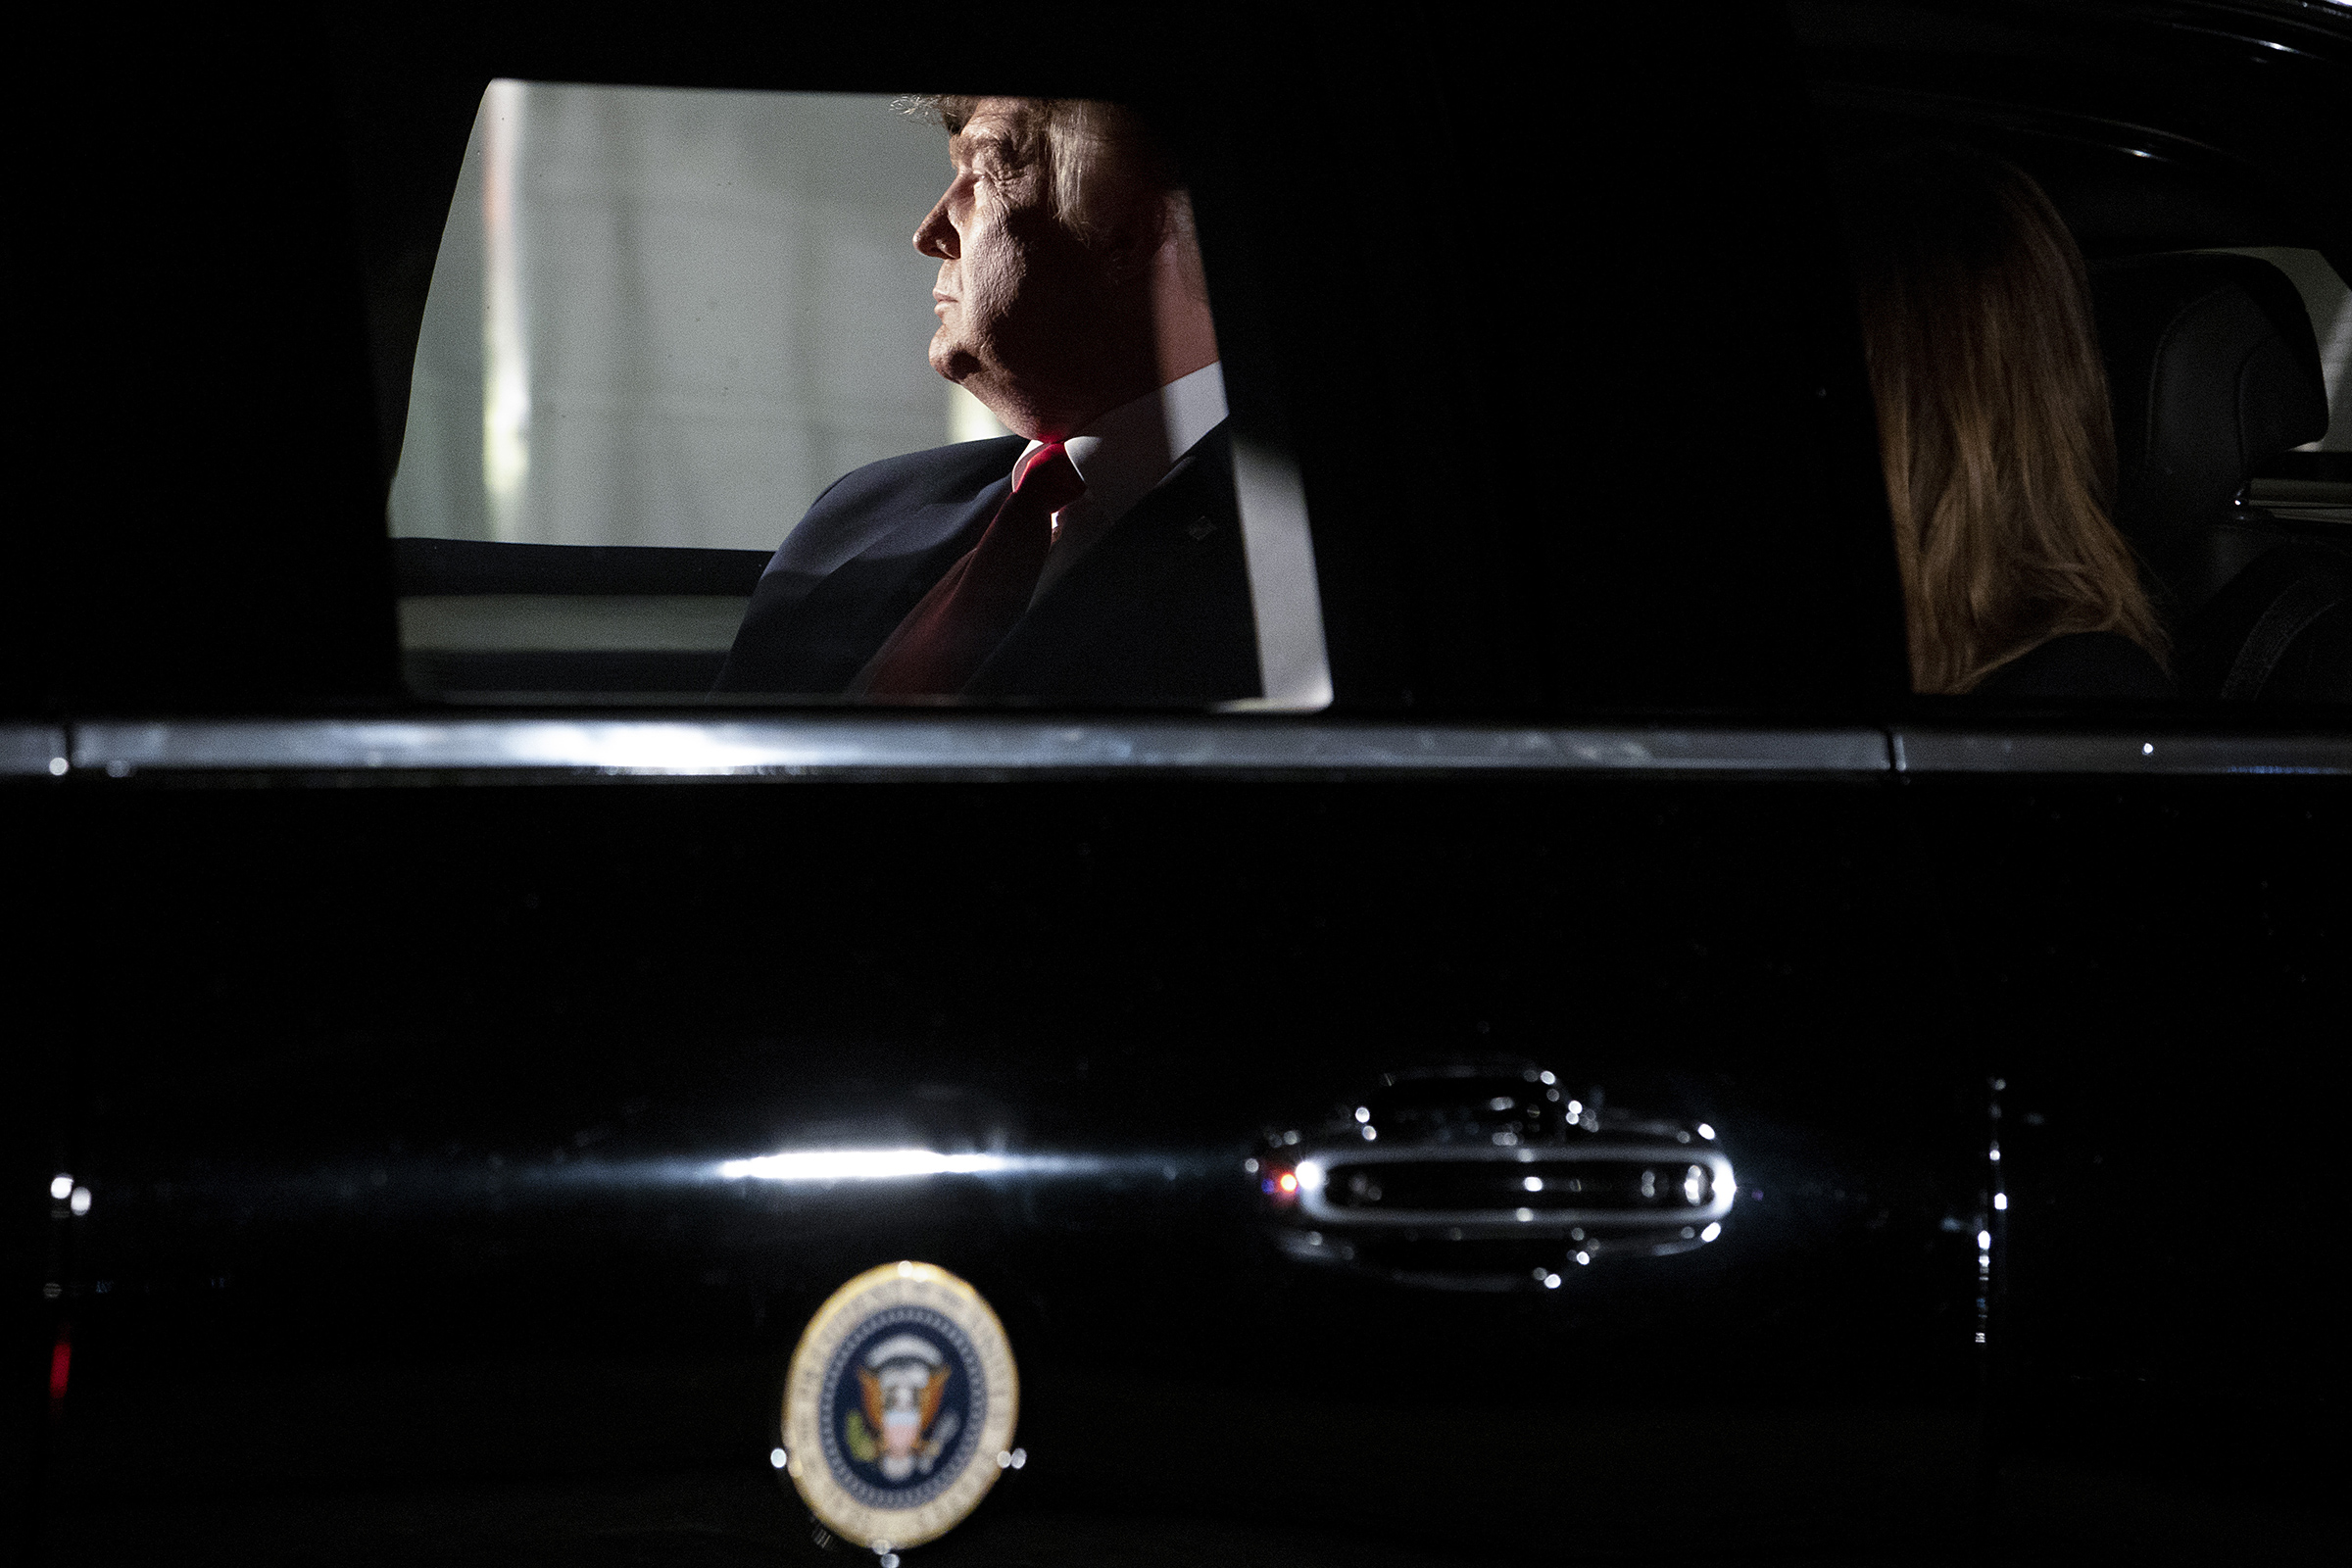 President Donald Trump sits in the presidential motorcade on the South Lawn of the White House on Feb. 4, 2020.